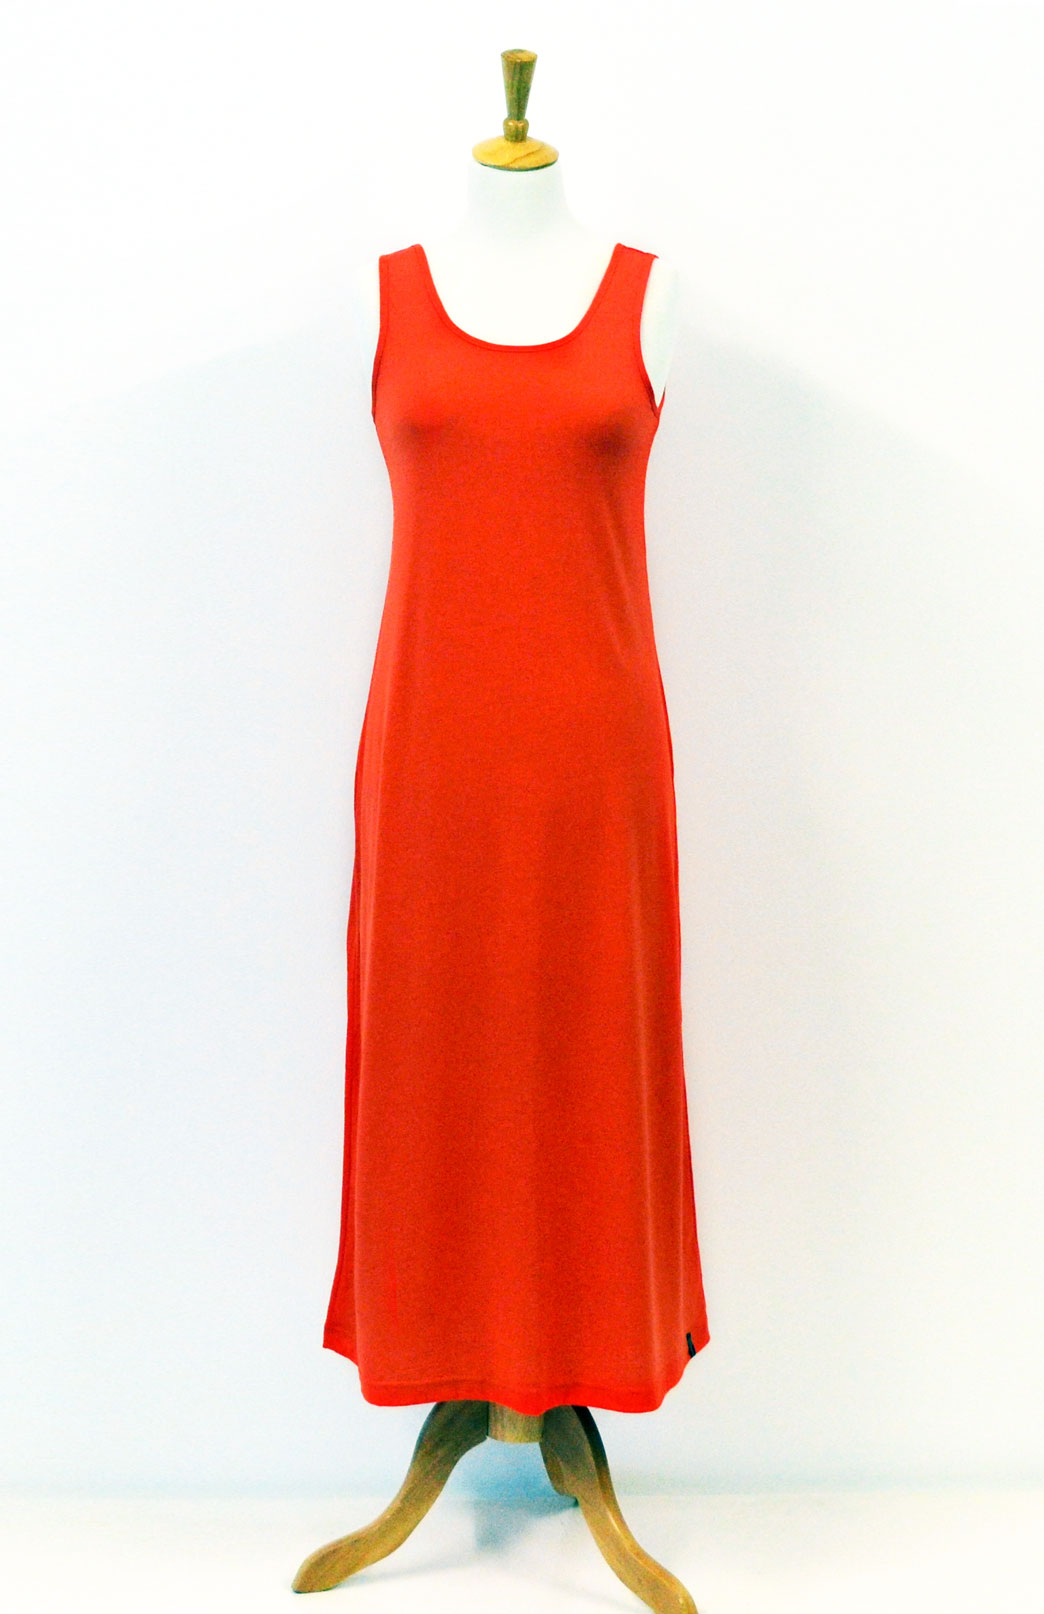 Maxi Dress - Plain - Women's Merino Wool Tangerine Orange Maxi Dress with Scoop Neckline - Smitten Merino Tasmania Australia